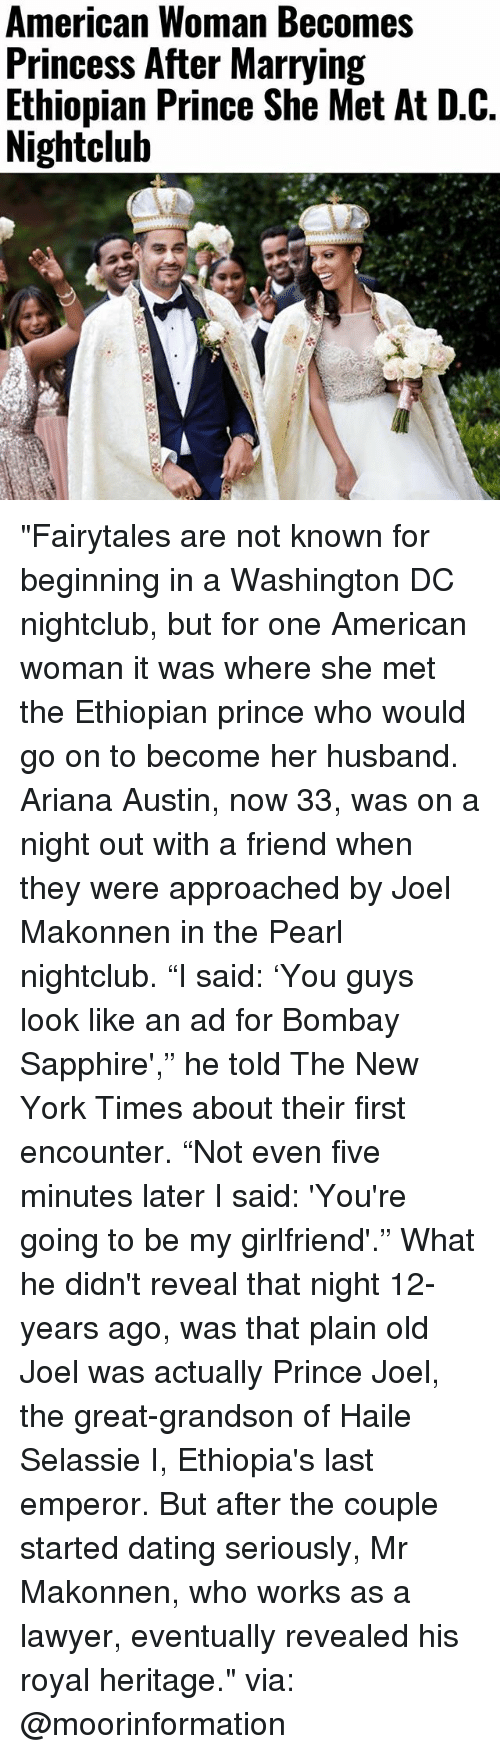 "Dating, Lawyer, and Memes: American Woman Becomes  Princess After Marrying  Ethiopian Prince She Met At D.C.  Nightclub ""Fairytales are not known for beginning in a Washington DC nightclub, but for one American woman it was where she met the Ethiopian prince who would go on to become her husband. Ariana Austin, now 33, was on a night out with a friend when they were approached by Joel Makonnen in the Pearl nightclub. ""I said: 'You guys look like an ad for Bombay Sapphire',"" he told The New York Times about their first encounter. ""Not even five minutes later I said: 'You're going to be my girlfriend'."" What he didn't reveal that night 12-years ago, was that plain old Joel was actually Prince Joel, the great-grandson of Haile Selassie I, Ethiopia's last emperor. But after the couple started dating seriously, Mr Makonnen, who works as a lawyer, eventually revealed his royal heritage."" via: @moorinformation"